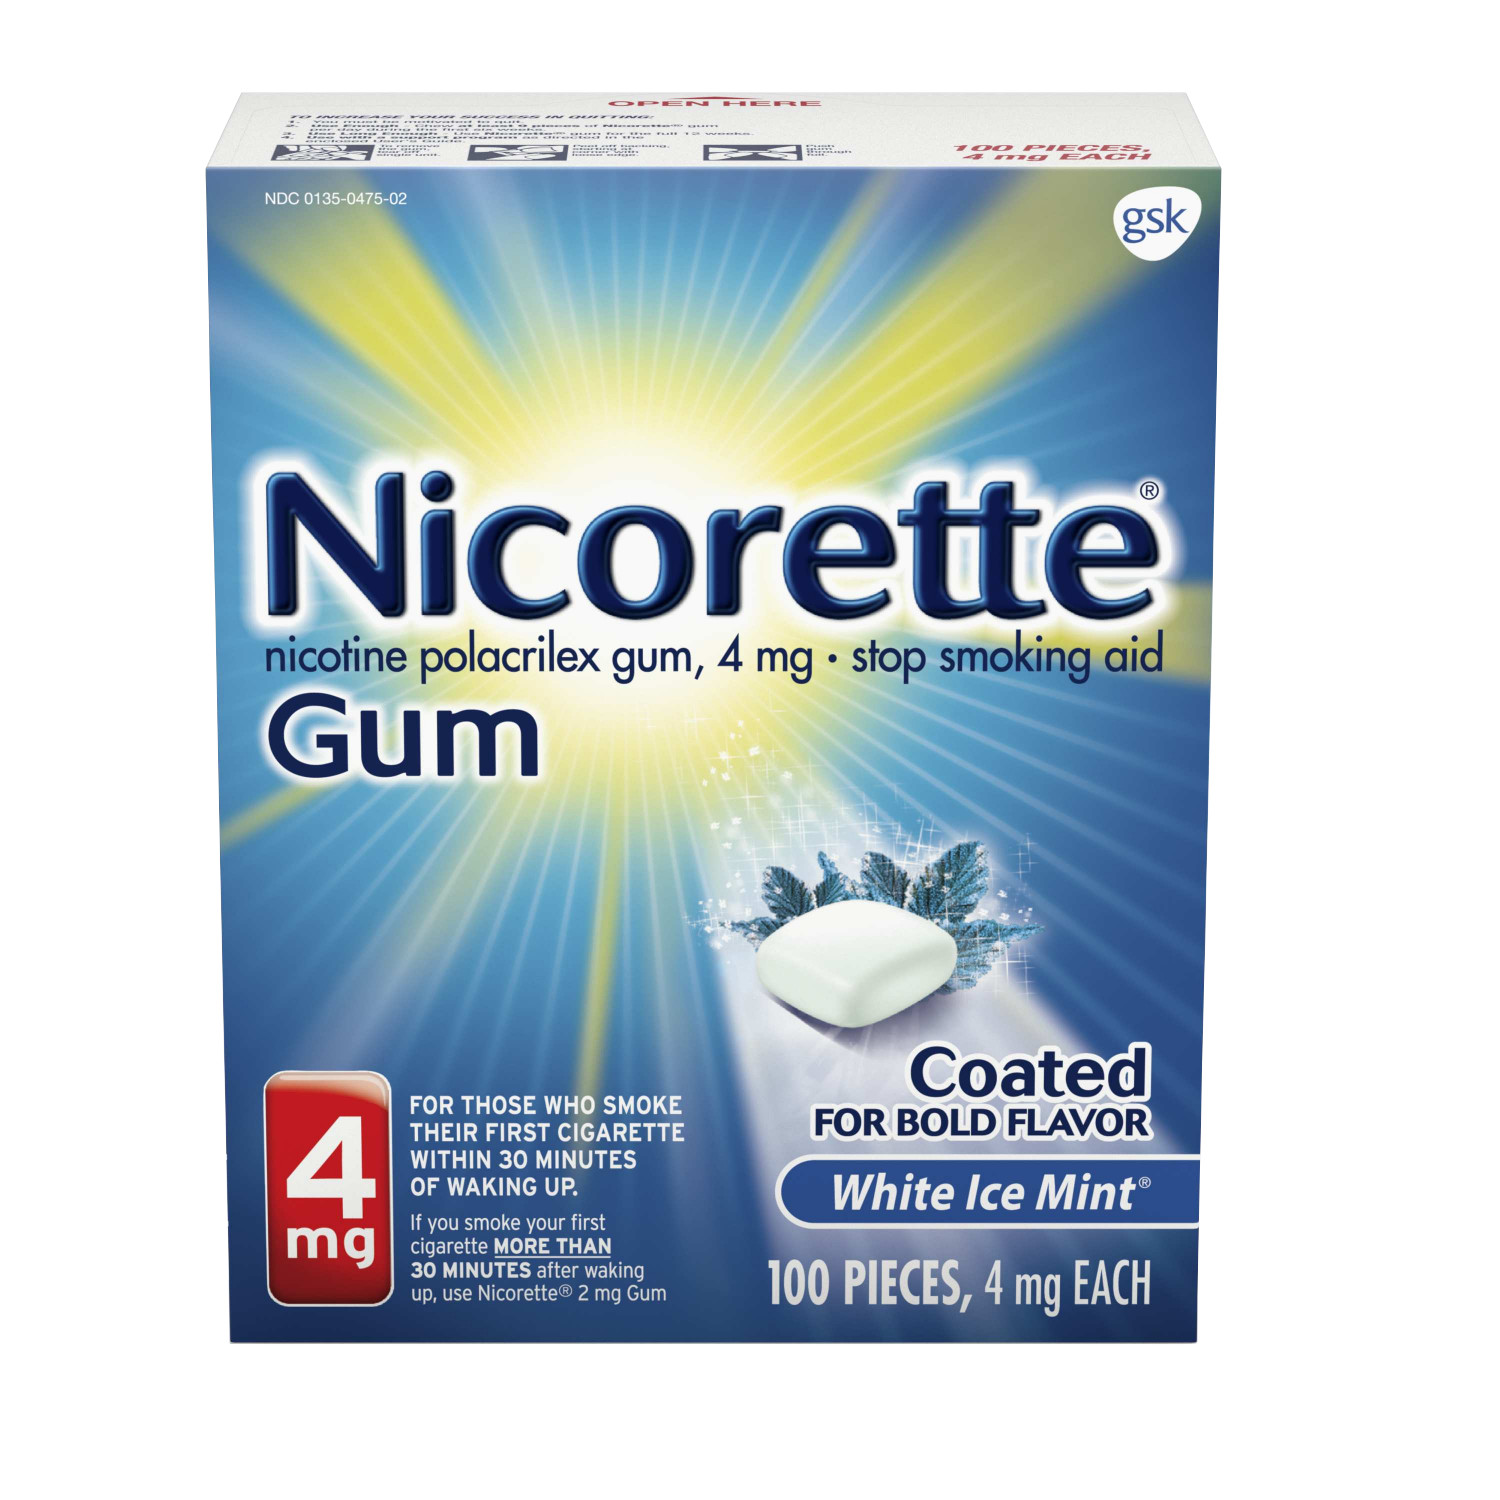 Nicorette Nicotine Gum, Stop Smoking Aid, 4 mg, White Ice Mint Flavor, 100 count